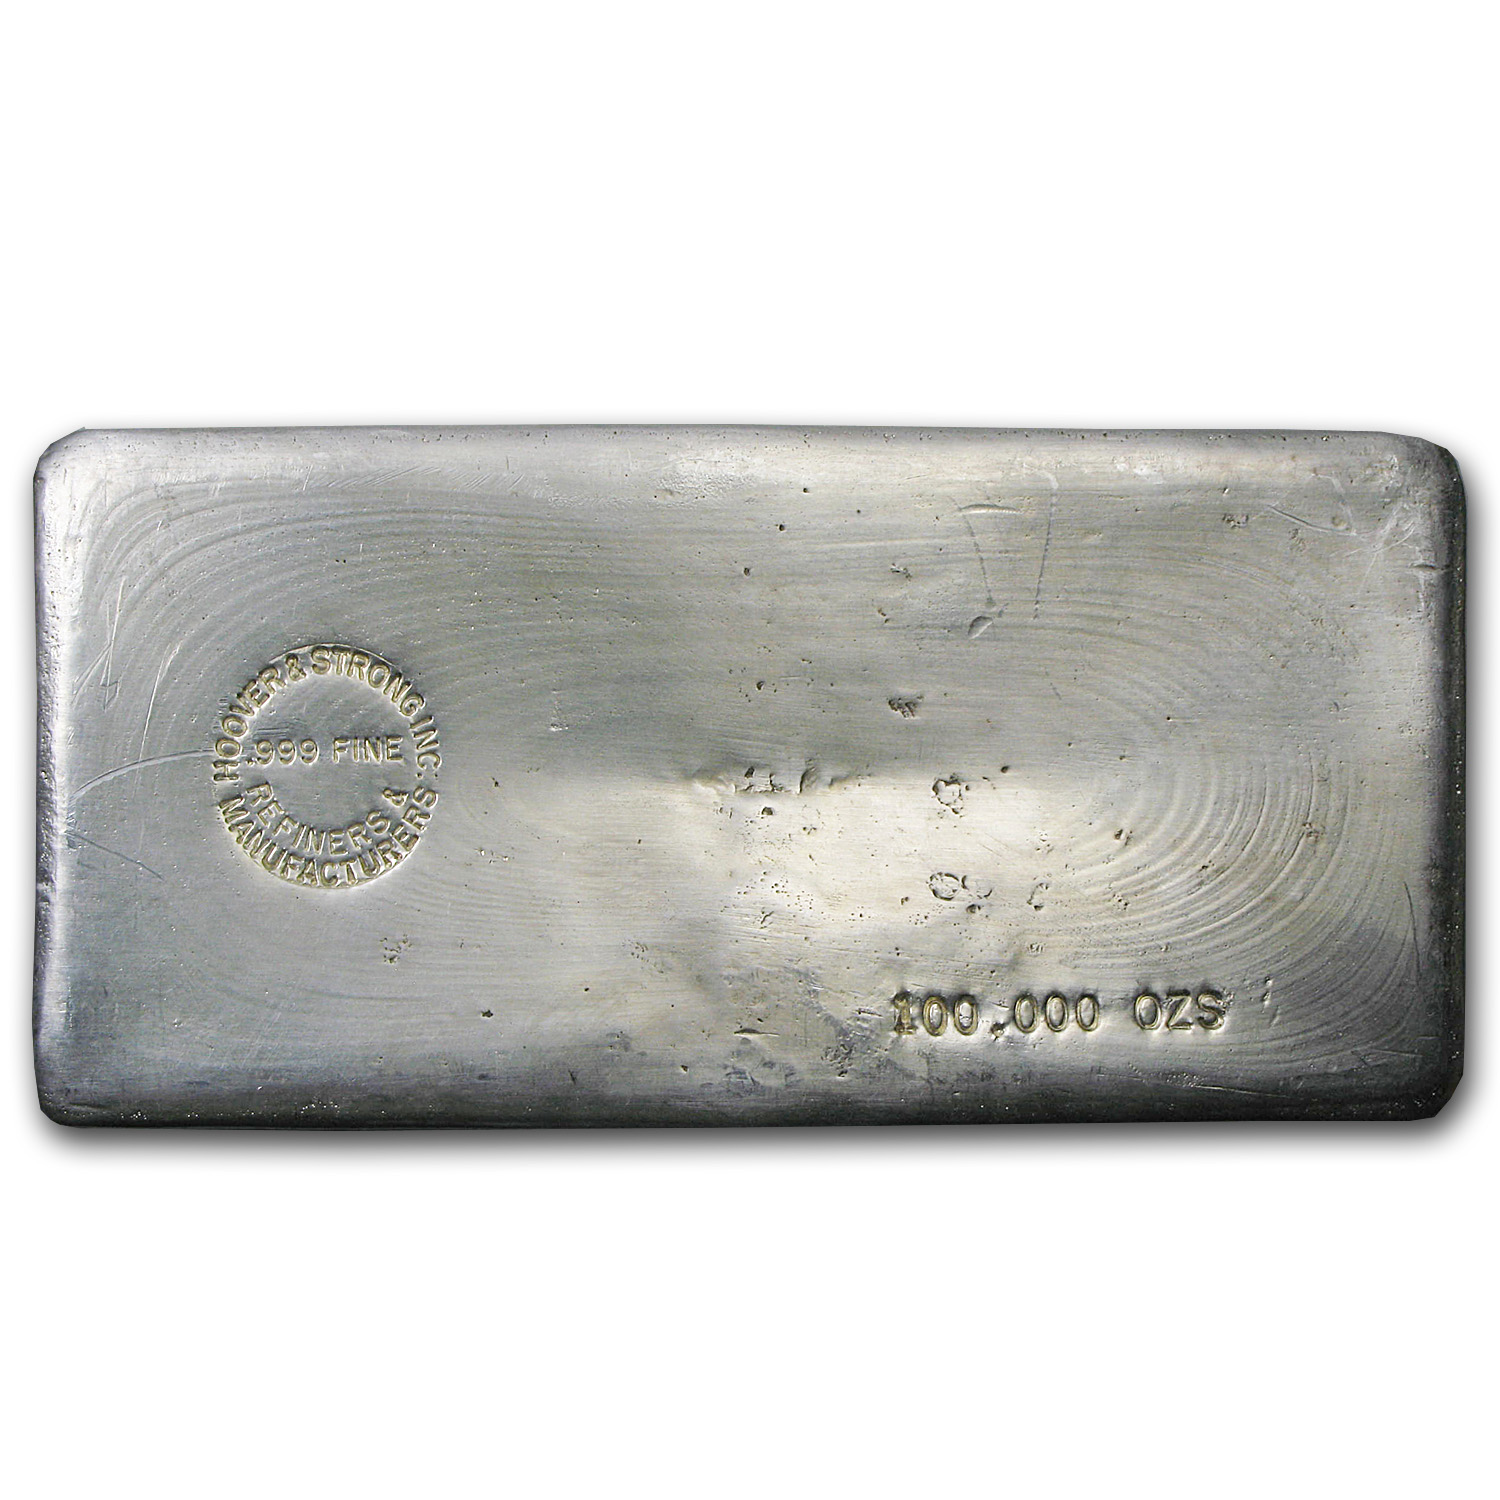 100 oz Silver Bar - Hoover & Strong